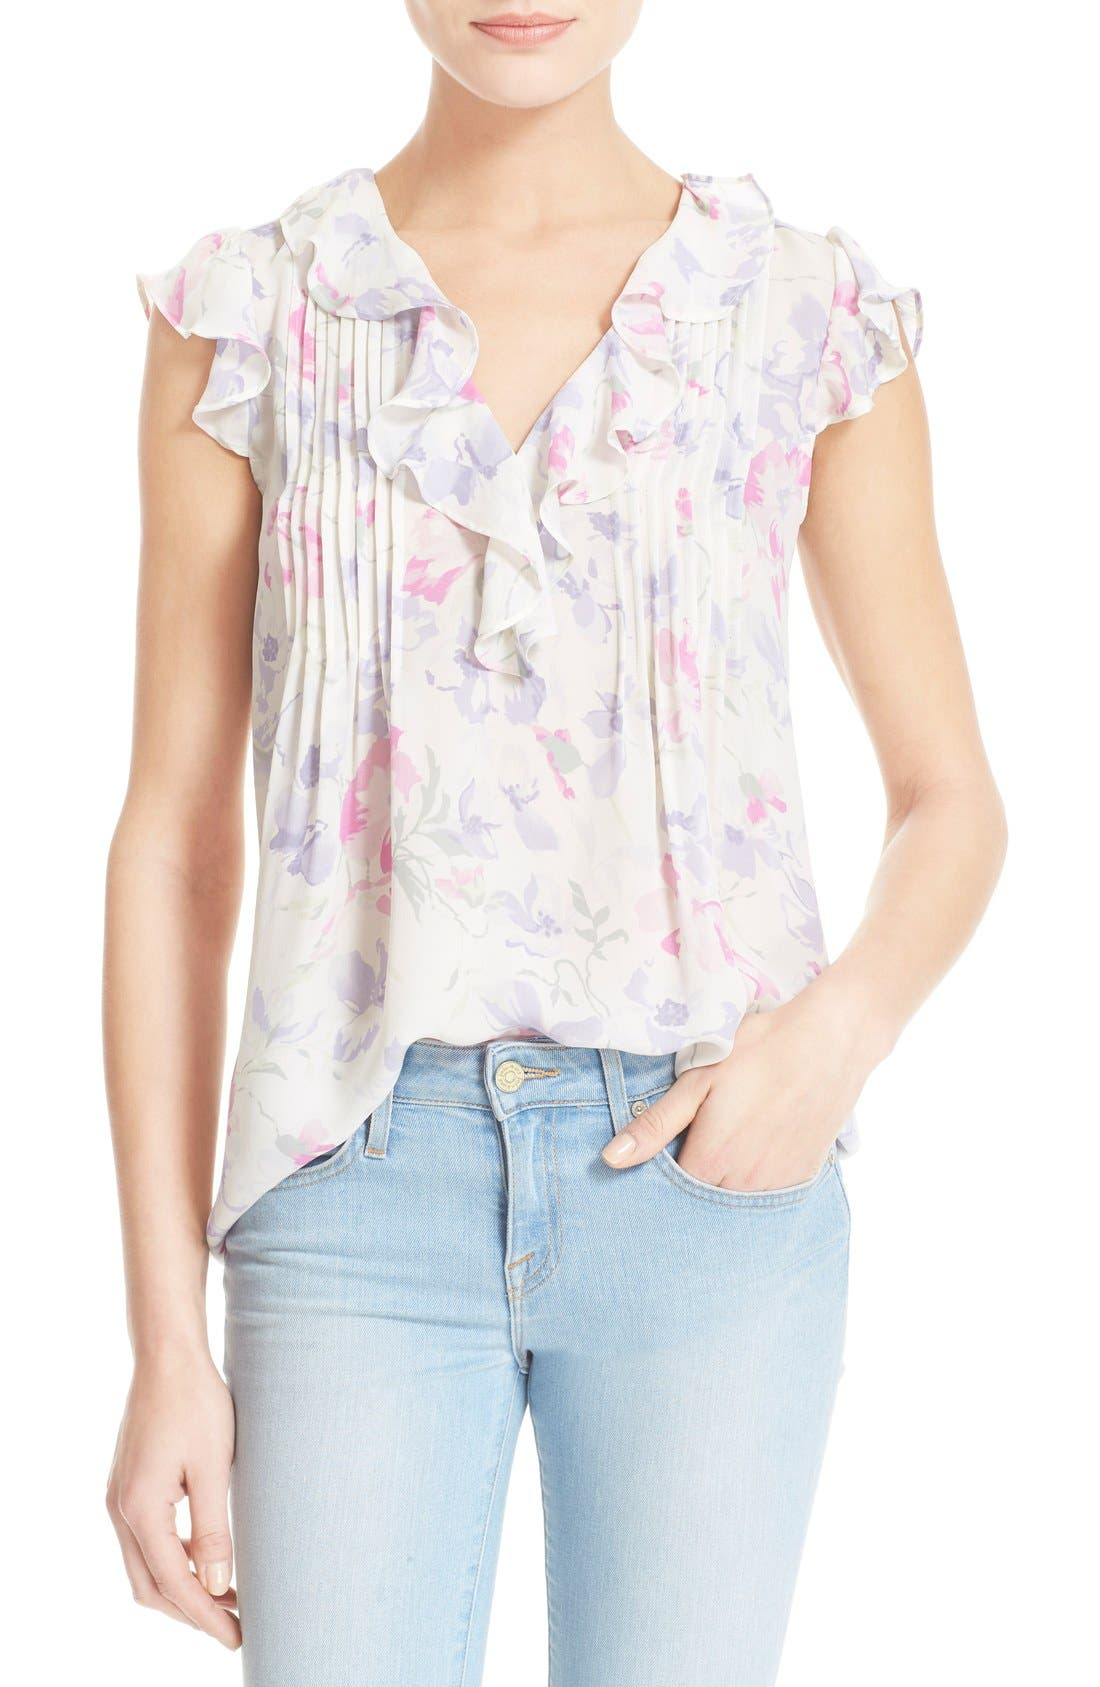 Main Image - Joie 'Olvera' Floral Print Blouse